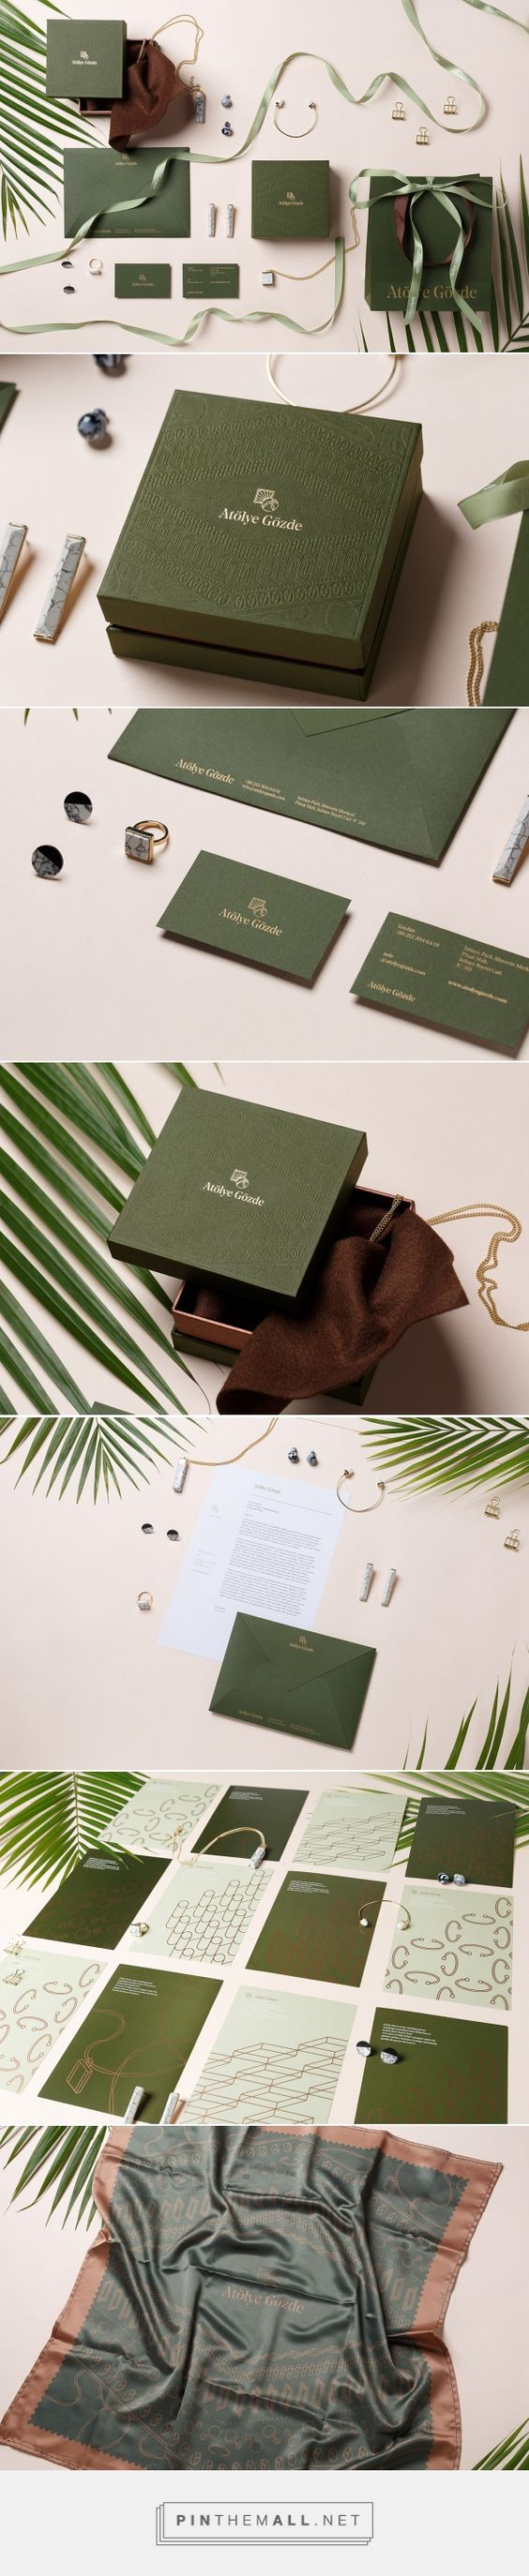 Branding, fashion and packaging for Atolye Gozde Branding on Behance by Frames Hong Kong, Hong Kong curated by Packaging Diva PD. A brand of empowering, unique jewellery by the Turkish designer Yasemin Gözde.